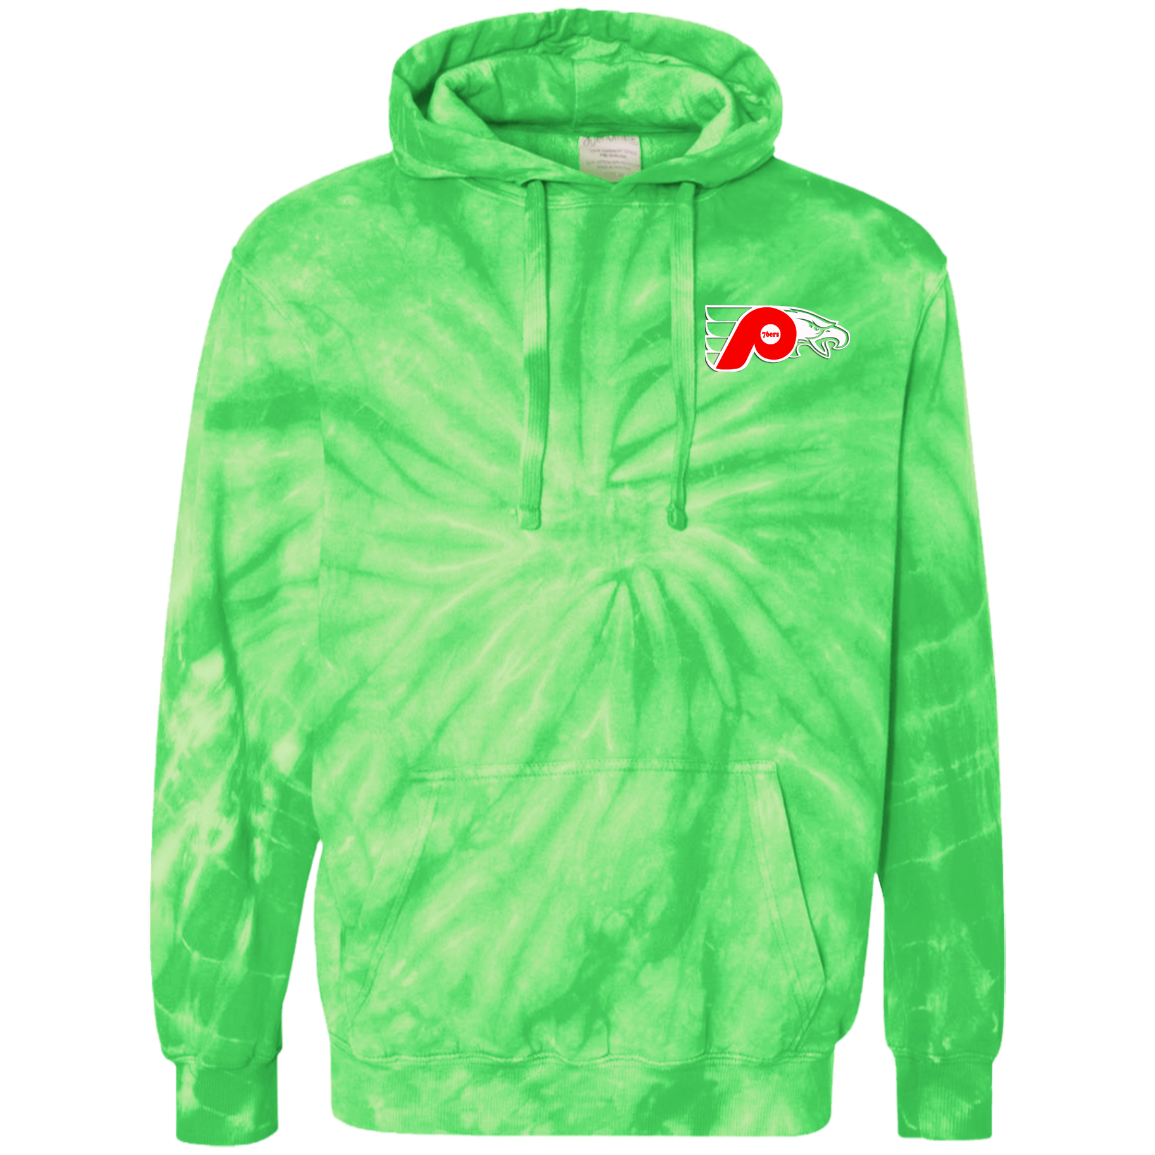 76ers Phillies Flyers Eagles Cd877 Tie Dyed Pullover Hoodie Check More At Https 8dix Com Products 76ers Phillies Flyers Eagl Pullover Hoodie Hoodies Pullover